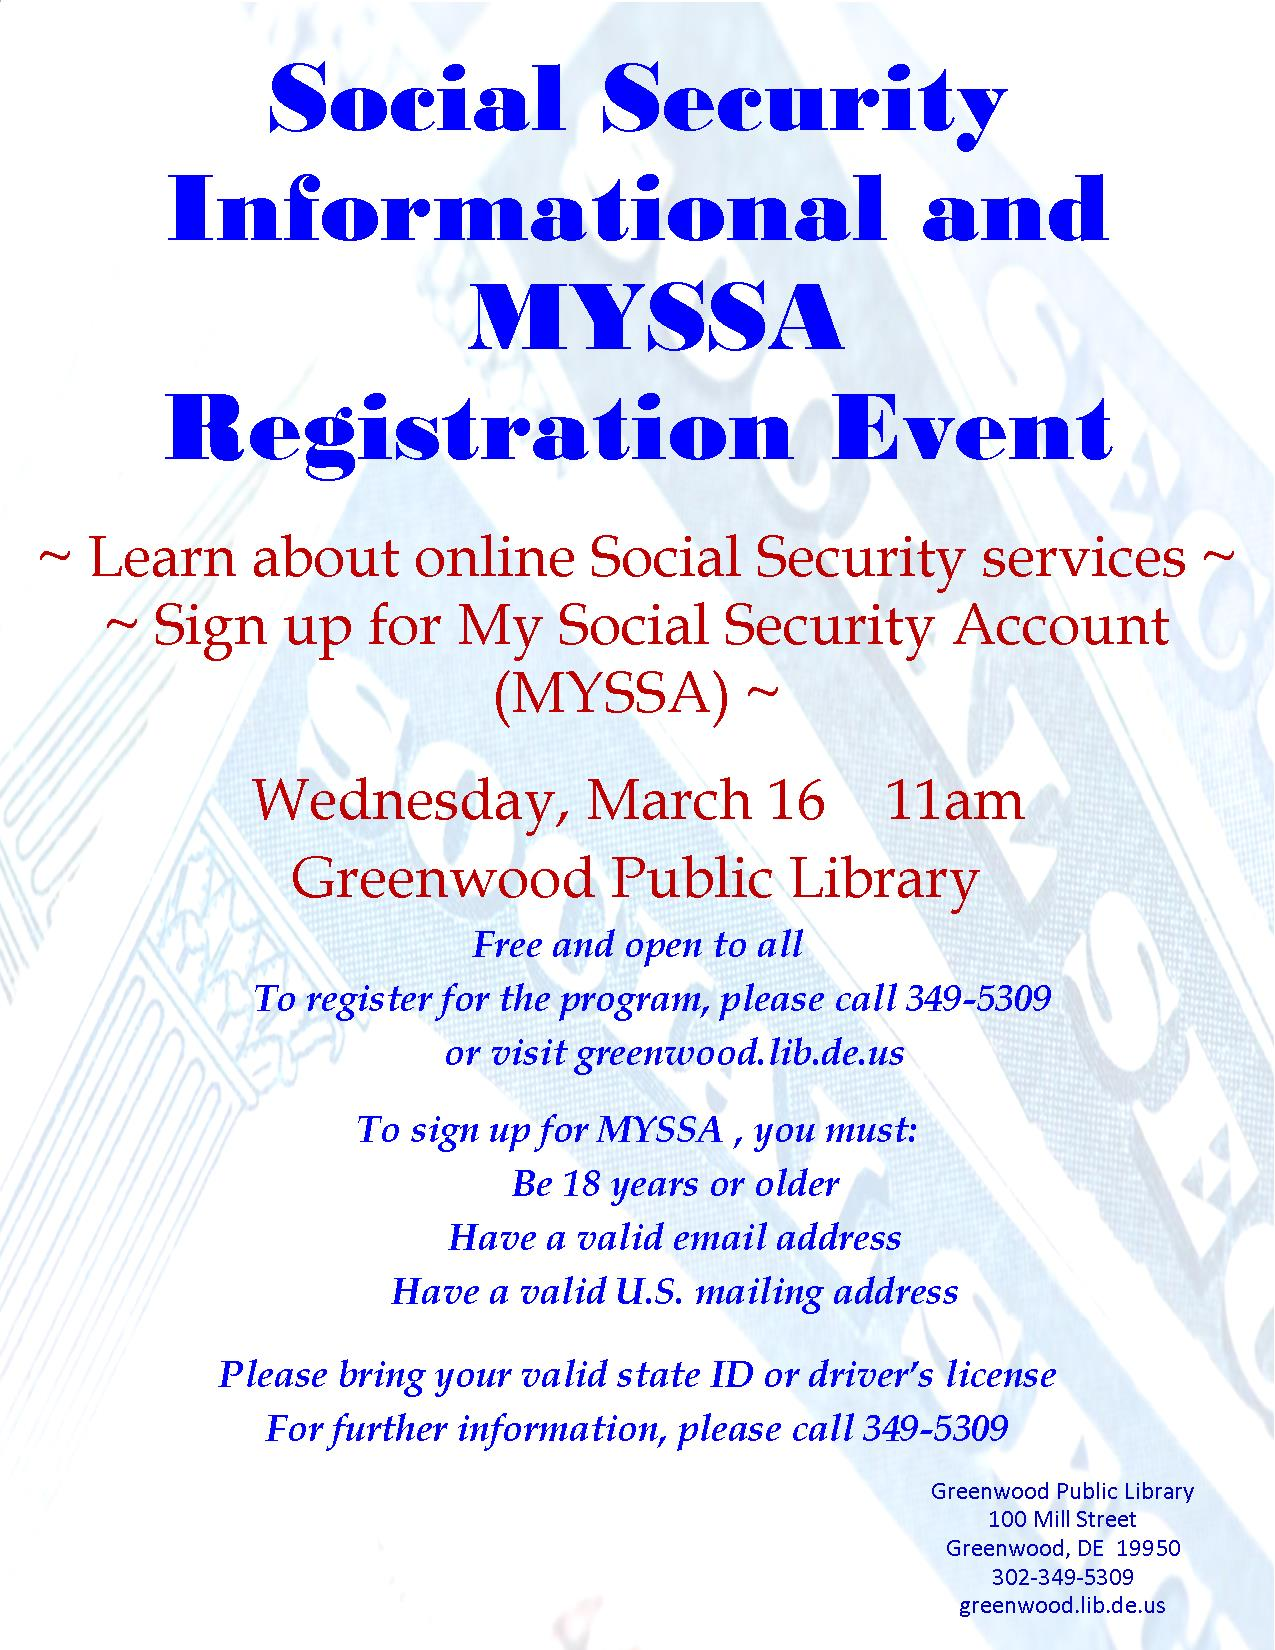 Social Security Informational Session